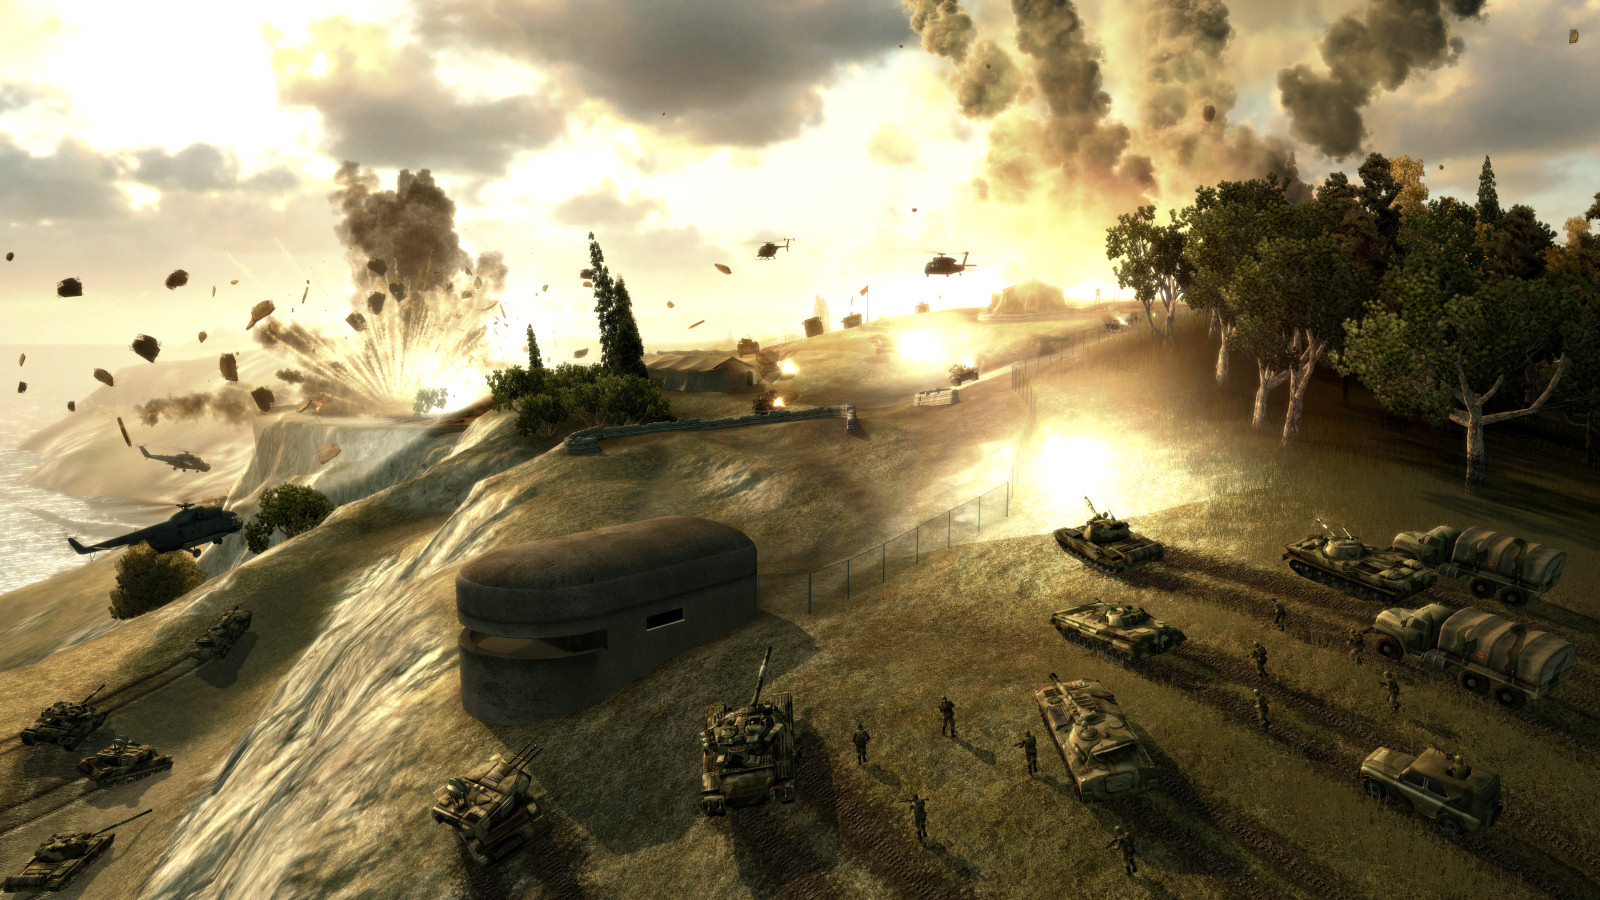 World In Conflict Backgrounds, Compatible - PC, Mobile, Gadgets  1600x900 px